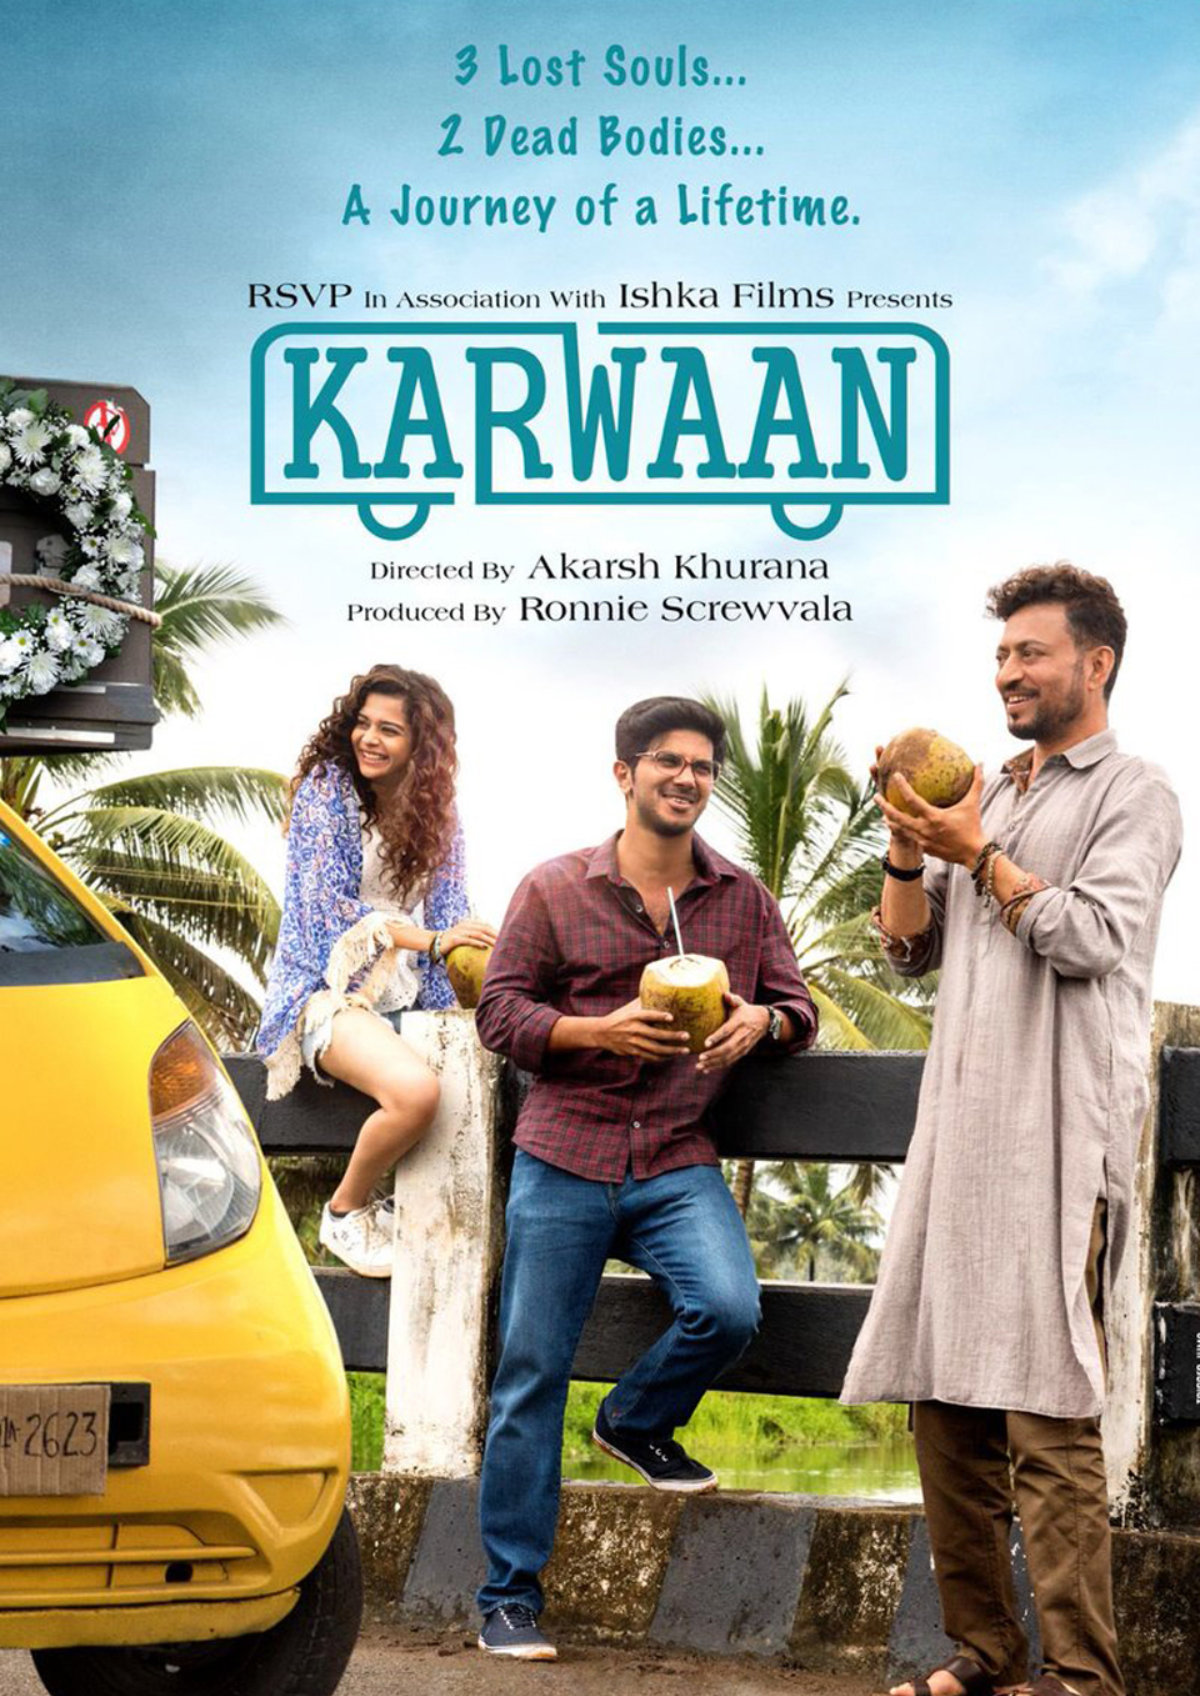 'Karwaan' movie poster